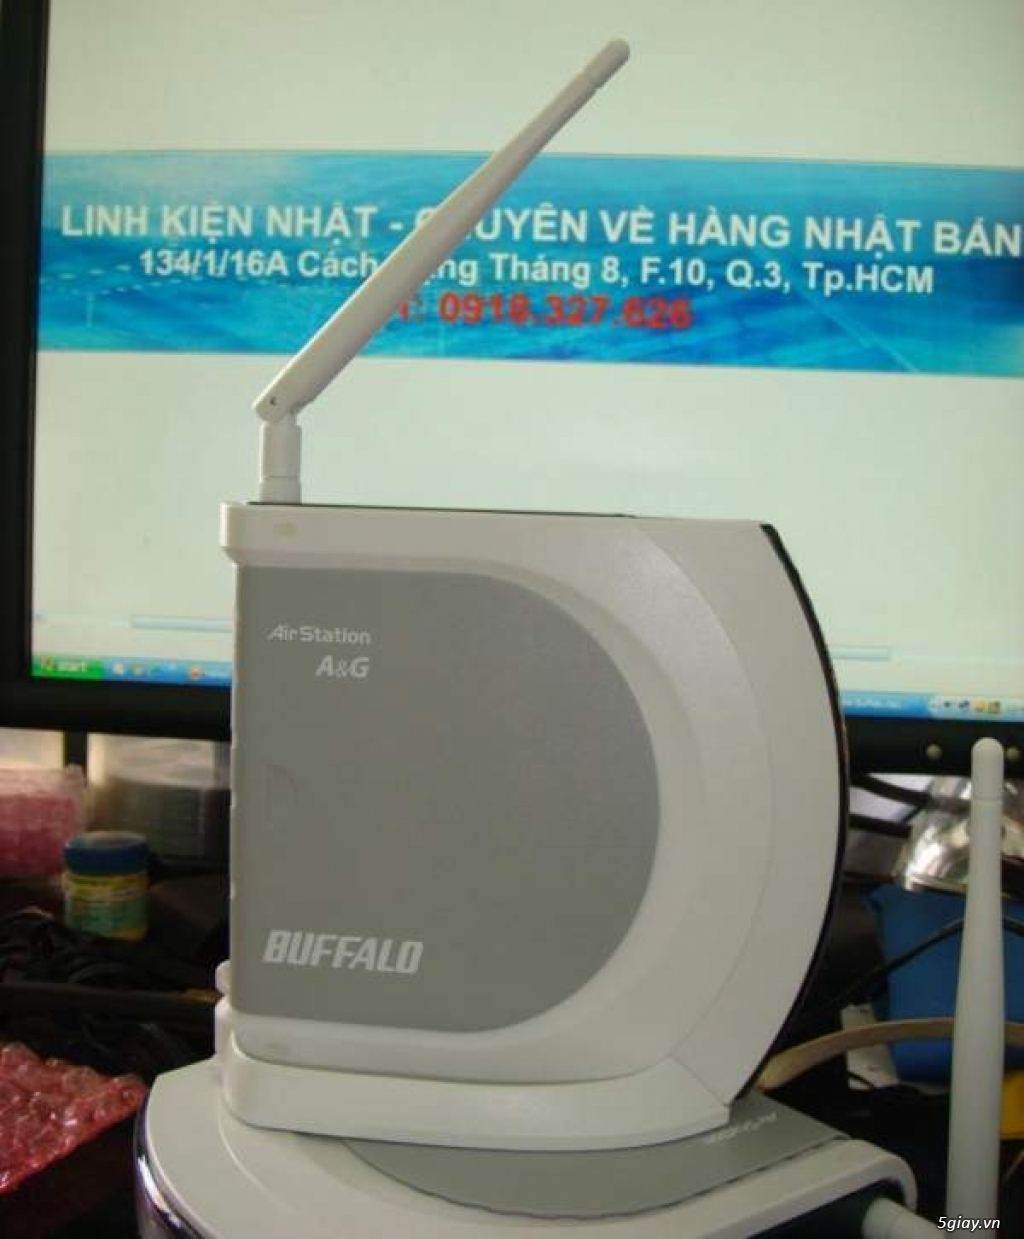 Buffalo Wifi: Modem, Router, Access Point, Repeater, Mouse, Box HDD, đầu phát HD - 7